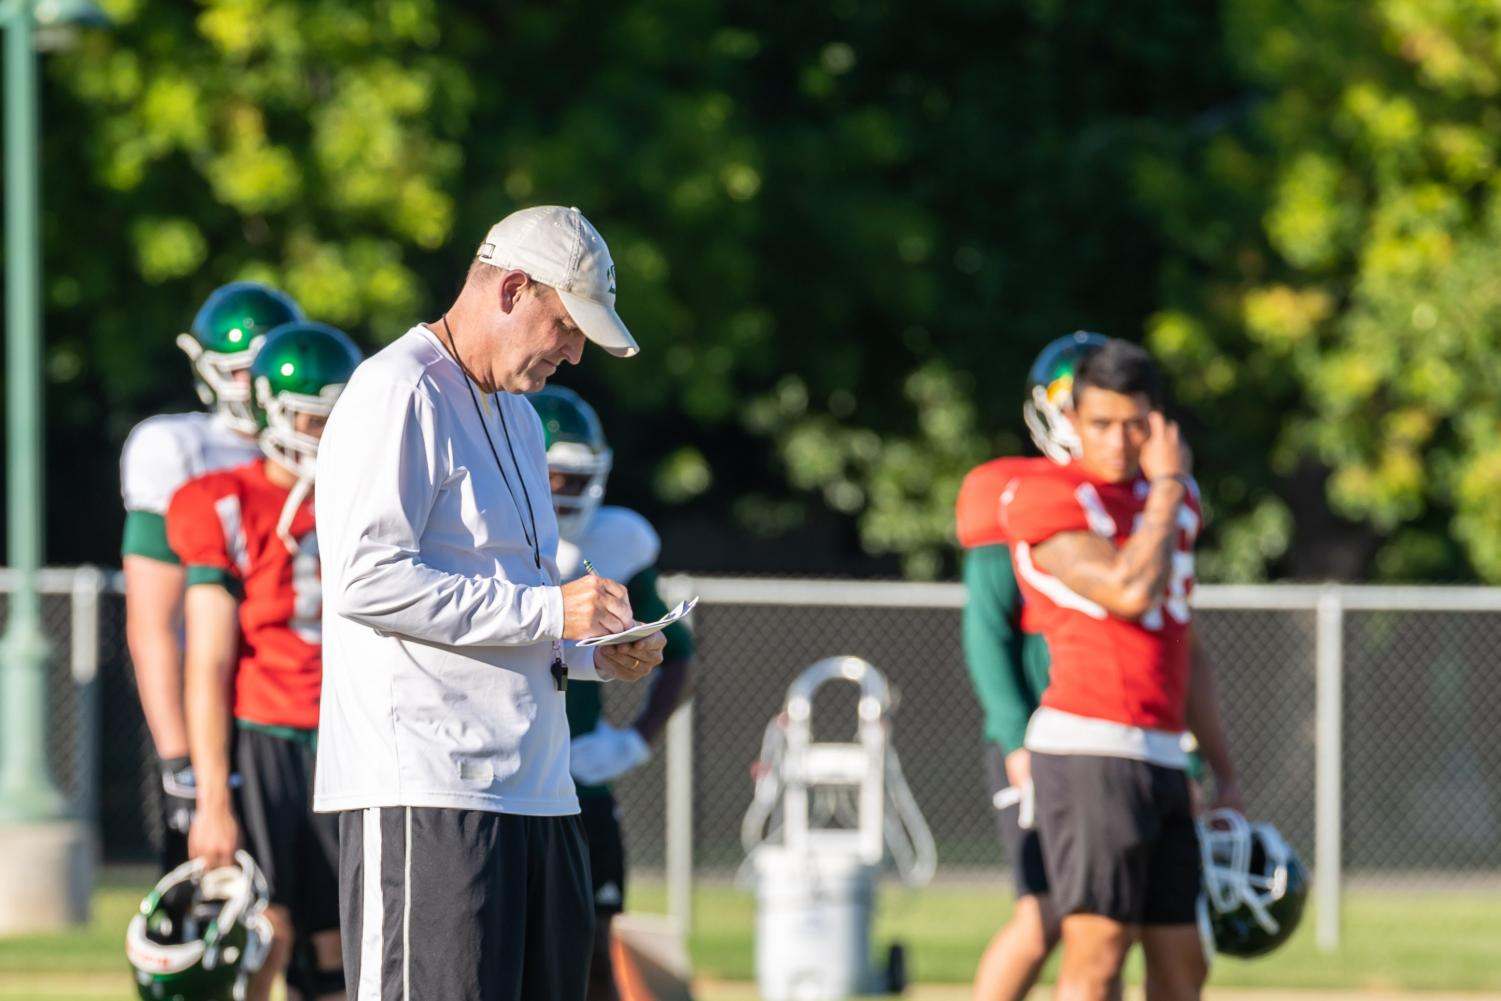 Sac+State+head+coach+Troy+Taylor+takes+notes+during+training+camp+on+Tuesday%2C+August+12+at+the+practice+field.+Taylor+is+entering+his+first+season+at+Sac+State+following+two+years+as+offensive+coordinator+at+the+University+of+Utah.